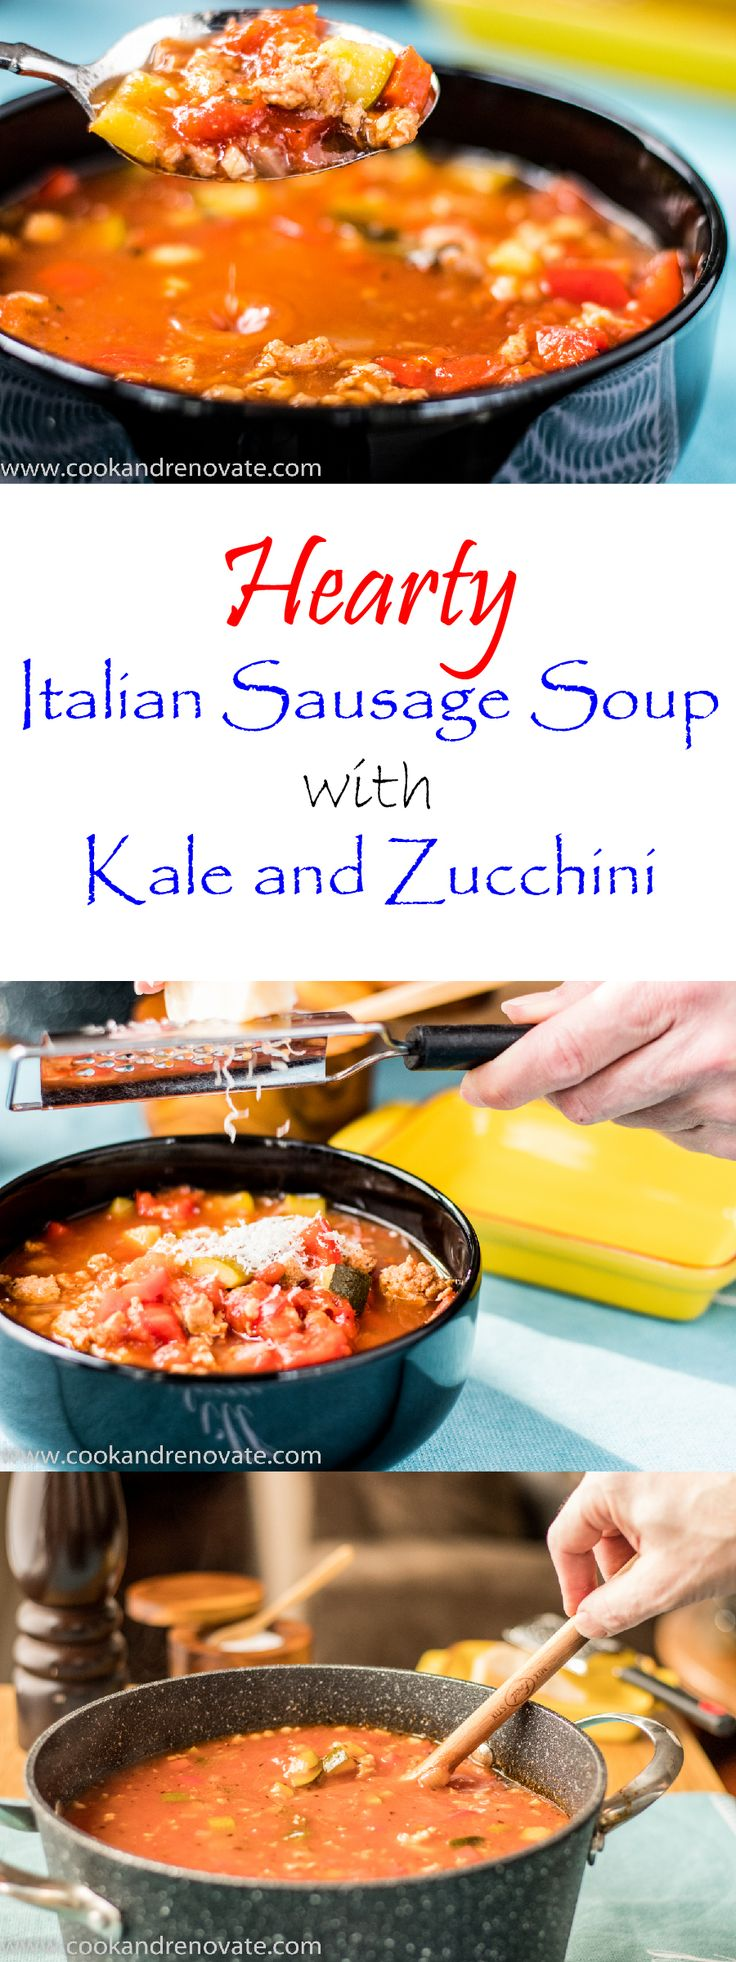 Hearty and Healthy Italian Sausage Soup featuring Kale and Zucchini, and fresh ground sausages from our local butcher!  Cook Well!  Eat Well!